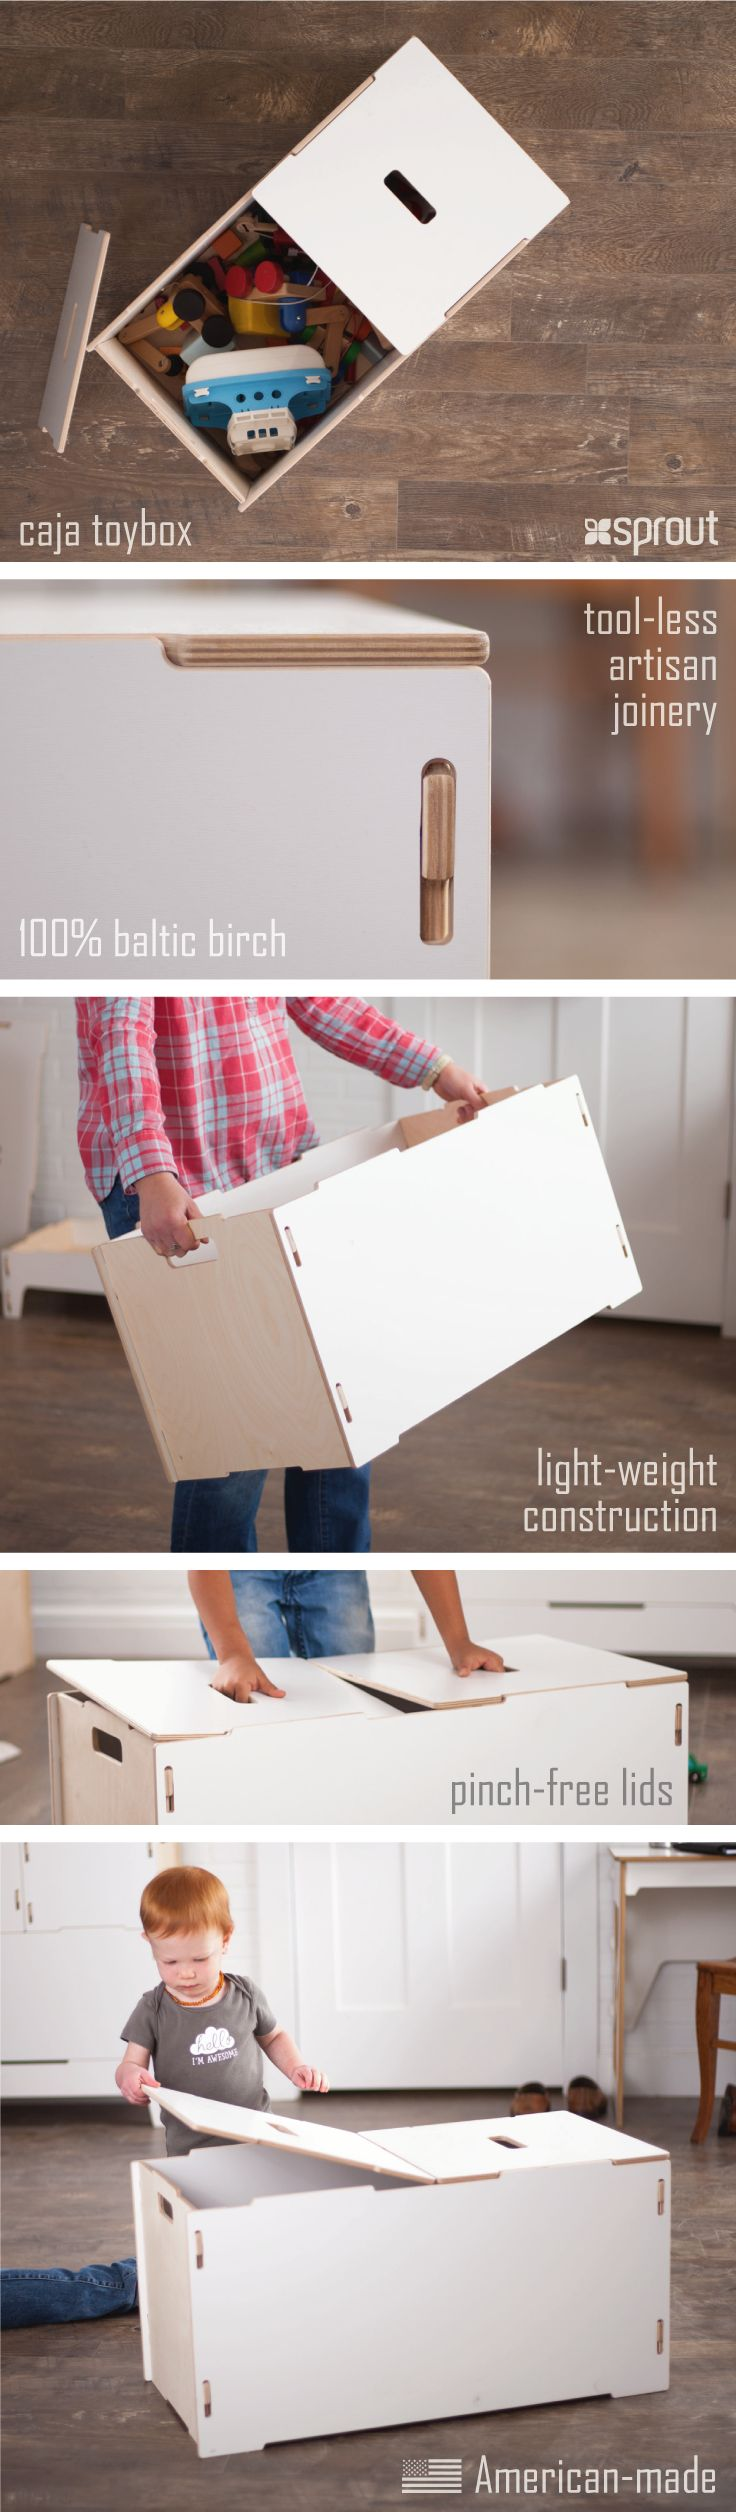 Sprout's white wooden toy box is light weight, durable, and has plenty of space for the treasures of childhood. 100% Baltic birch with tool-less artisan joinery.  Learn more about the wooden toy box at Sprout.